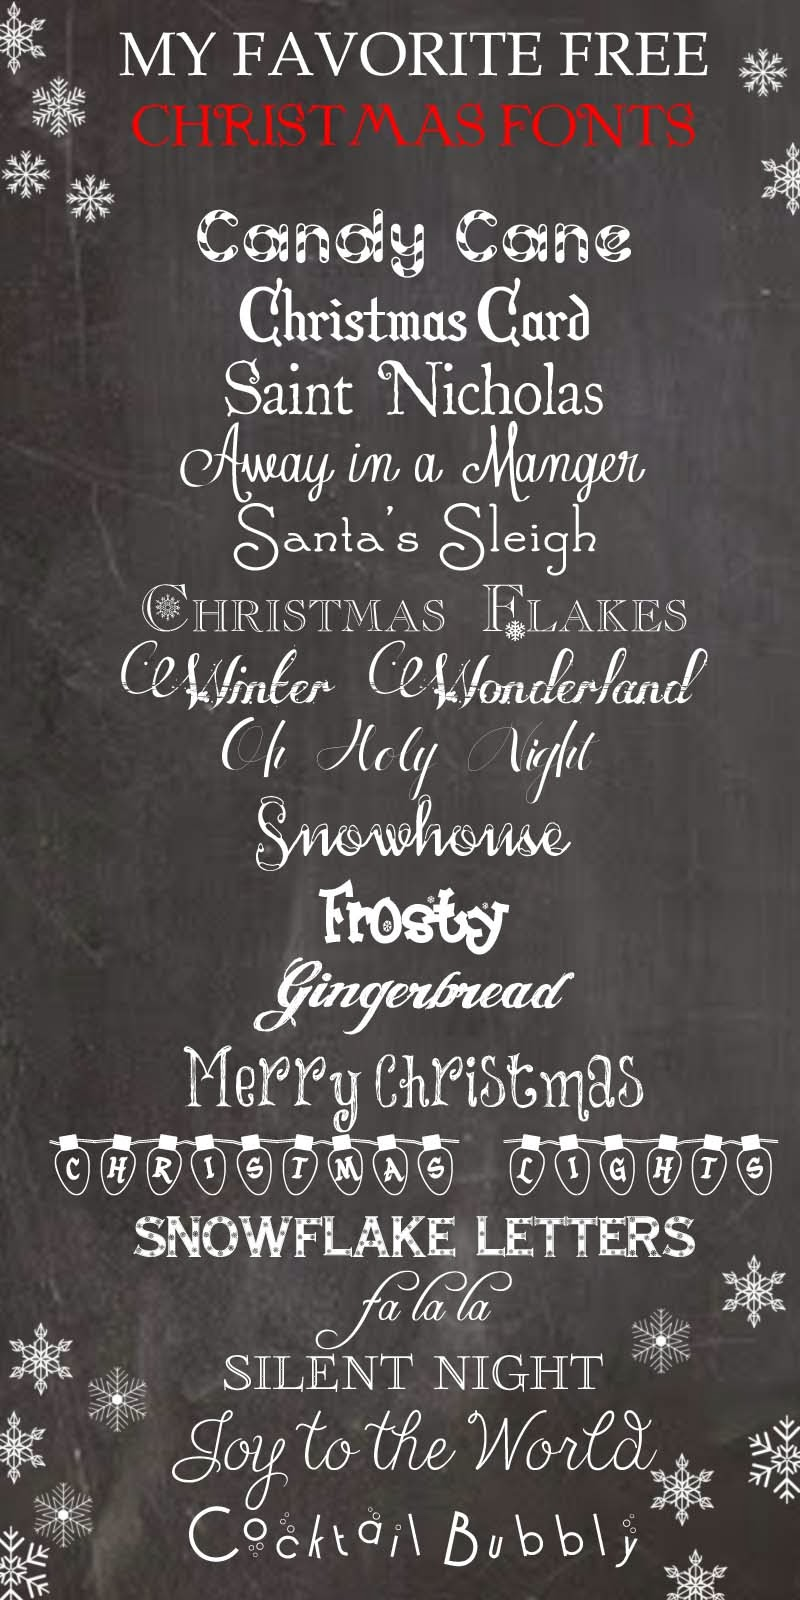 Favorite free christmas fonts from herecomesthesunblog net